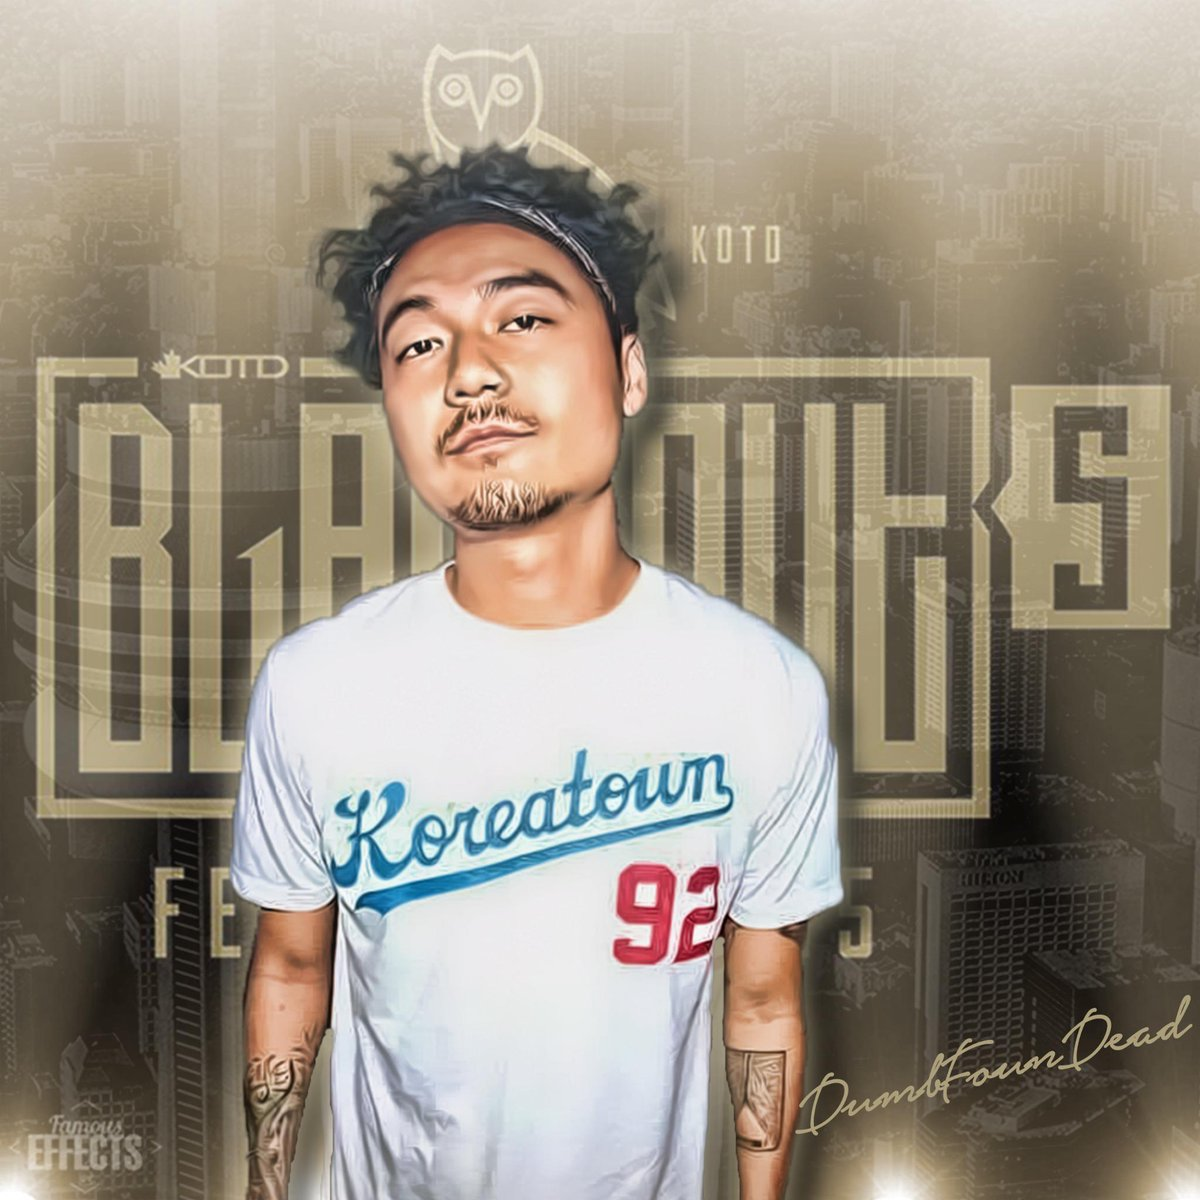 #OVOKOTD #BO5 @dumbfoundead makes his long awaited return to battling. Shouts out to @famouseffect for the graphic http://t.co/FdQgQUK8ai